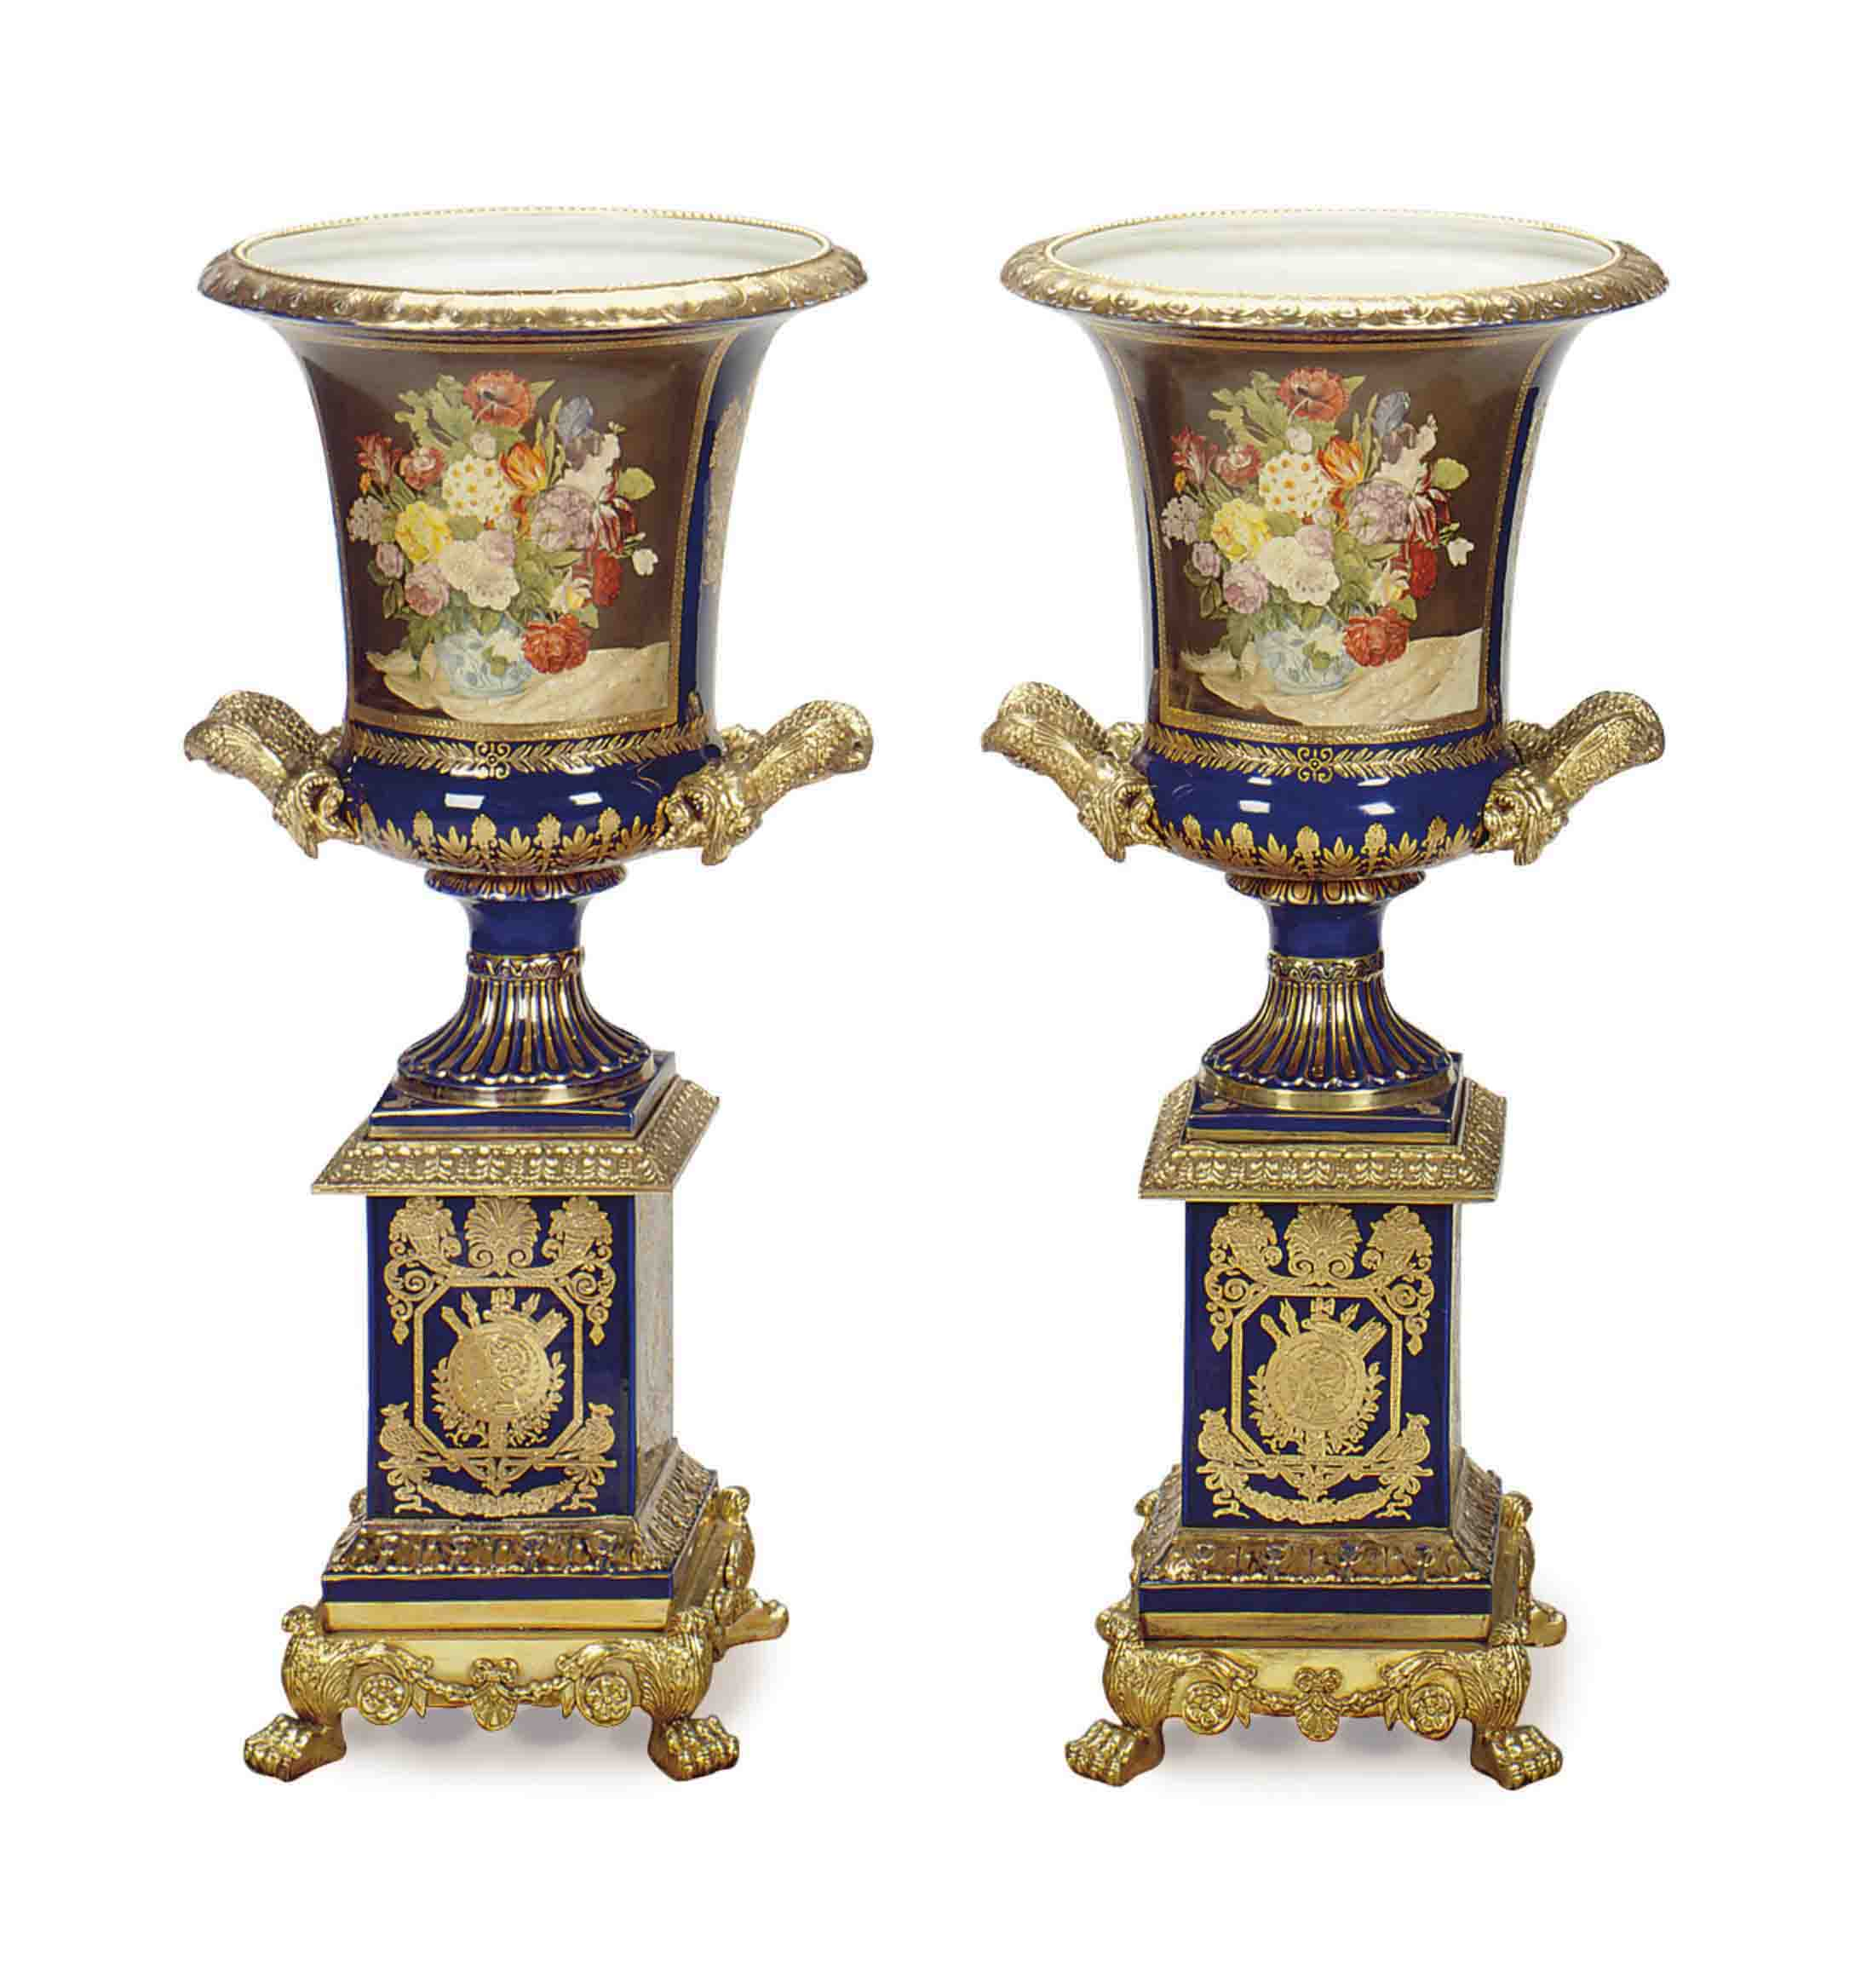 A PAIR OF GILT-METAL MOUNTED BLUE GROUND PORCELAIN VASES,